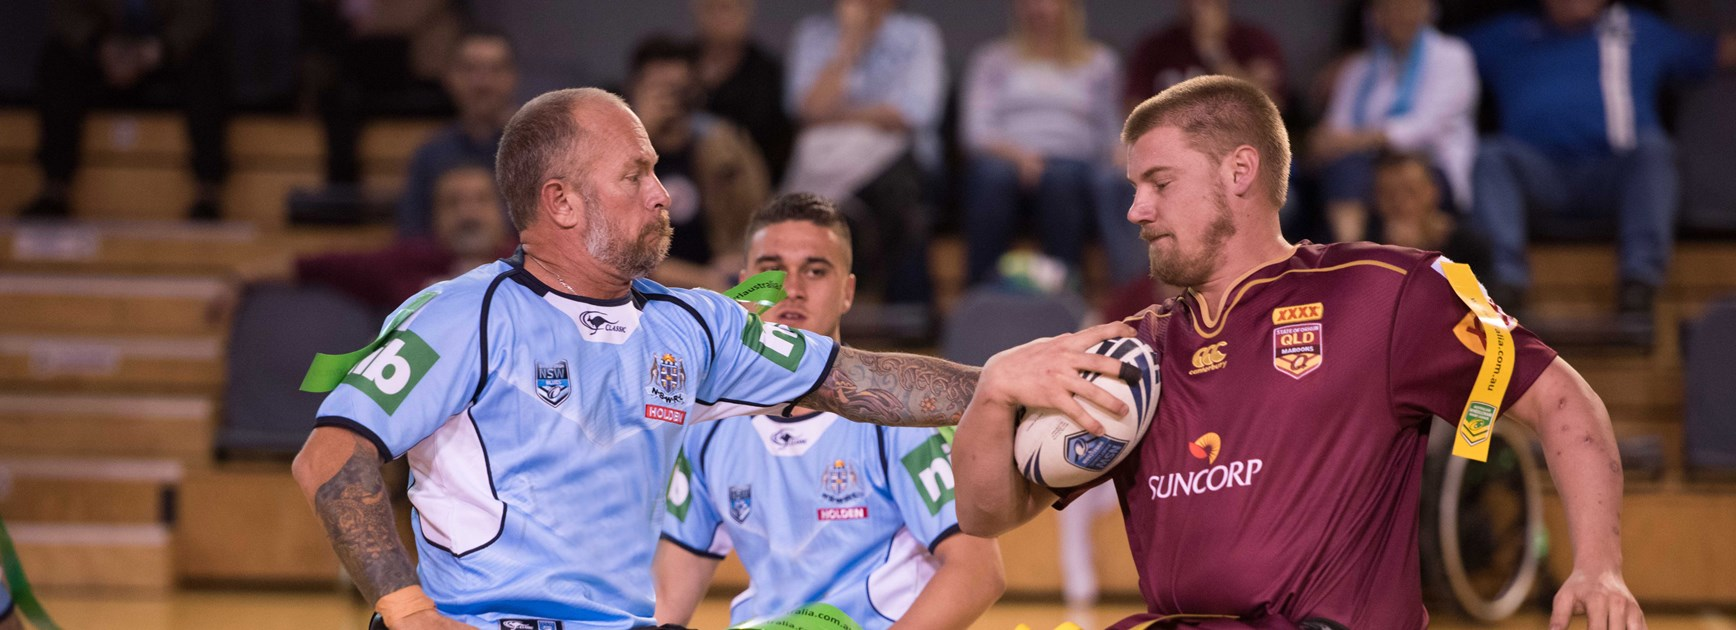 NSW To Host Wheelchair Rugby League Interstate Challenge